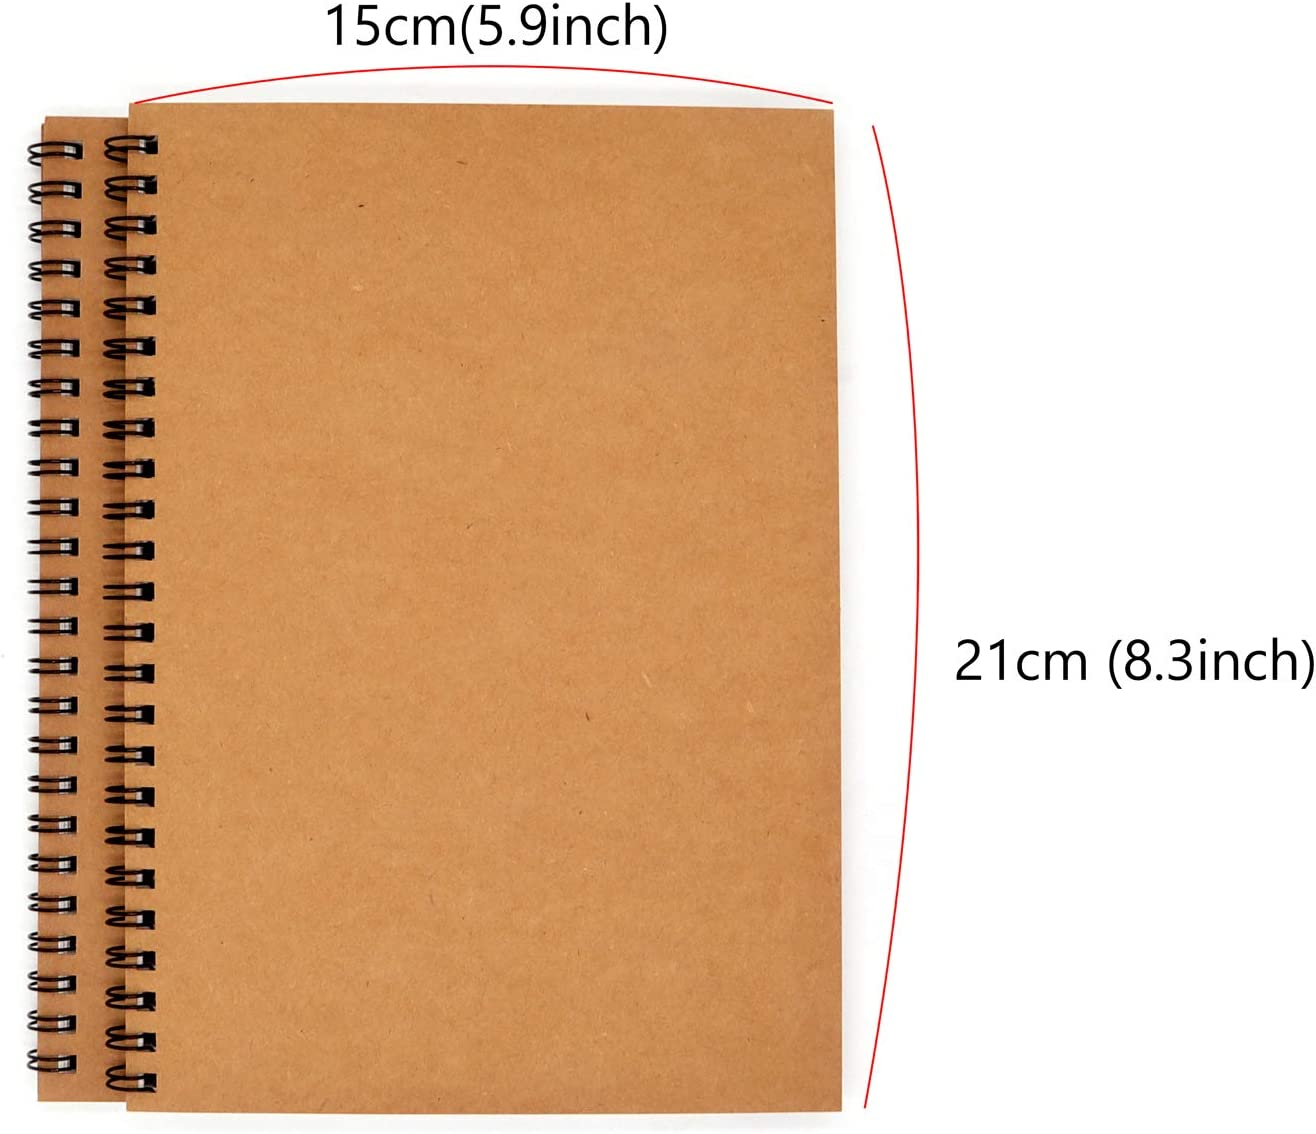 2-pack Kraft A5 Spiral Notebook 100gsm 5.9x8.3inchs 50 Sheets Blank Sketch Book Pad 100 pages